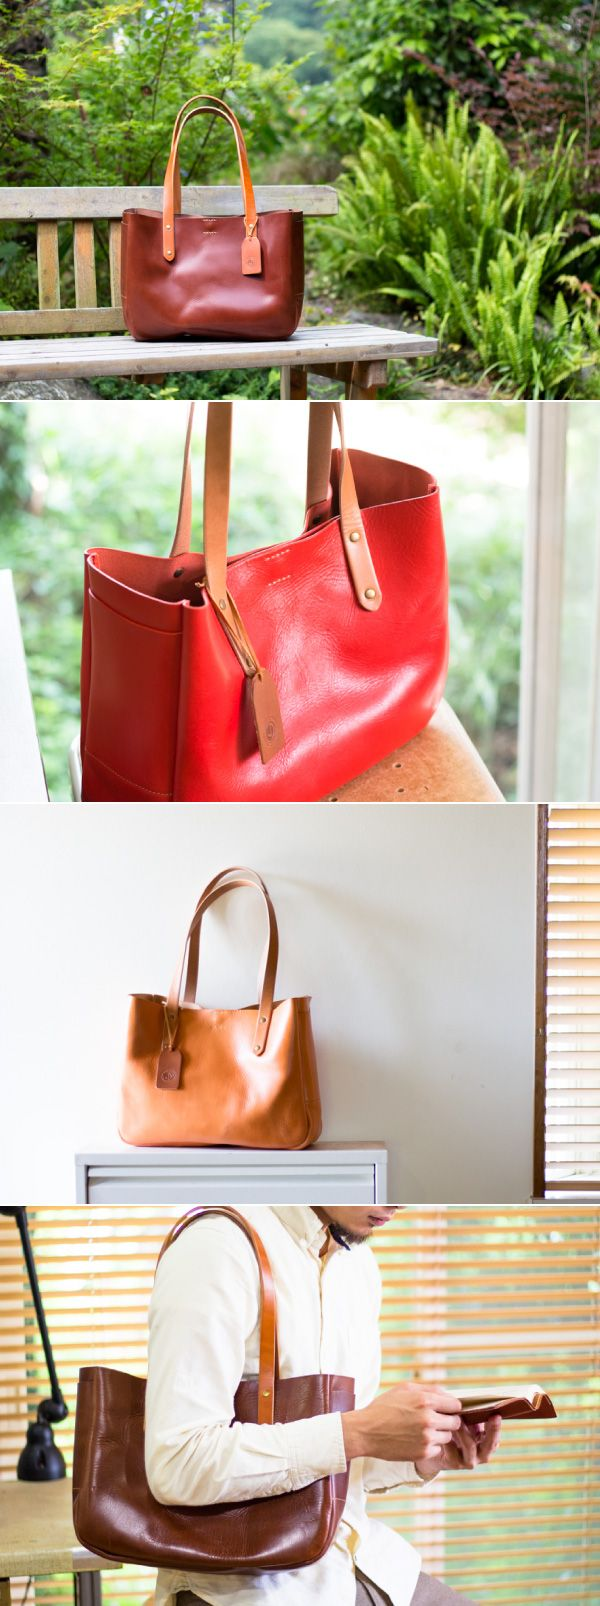 leather tote bag | Duram Factory